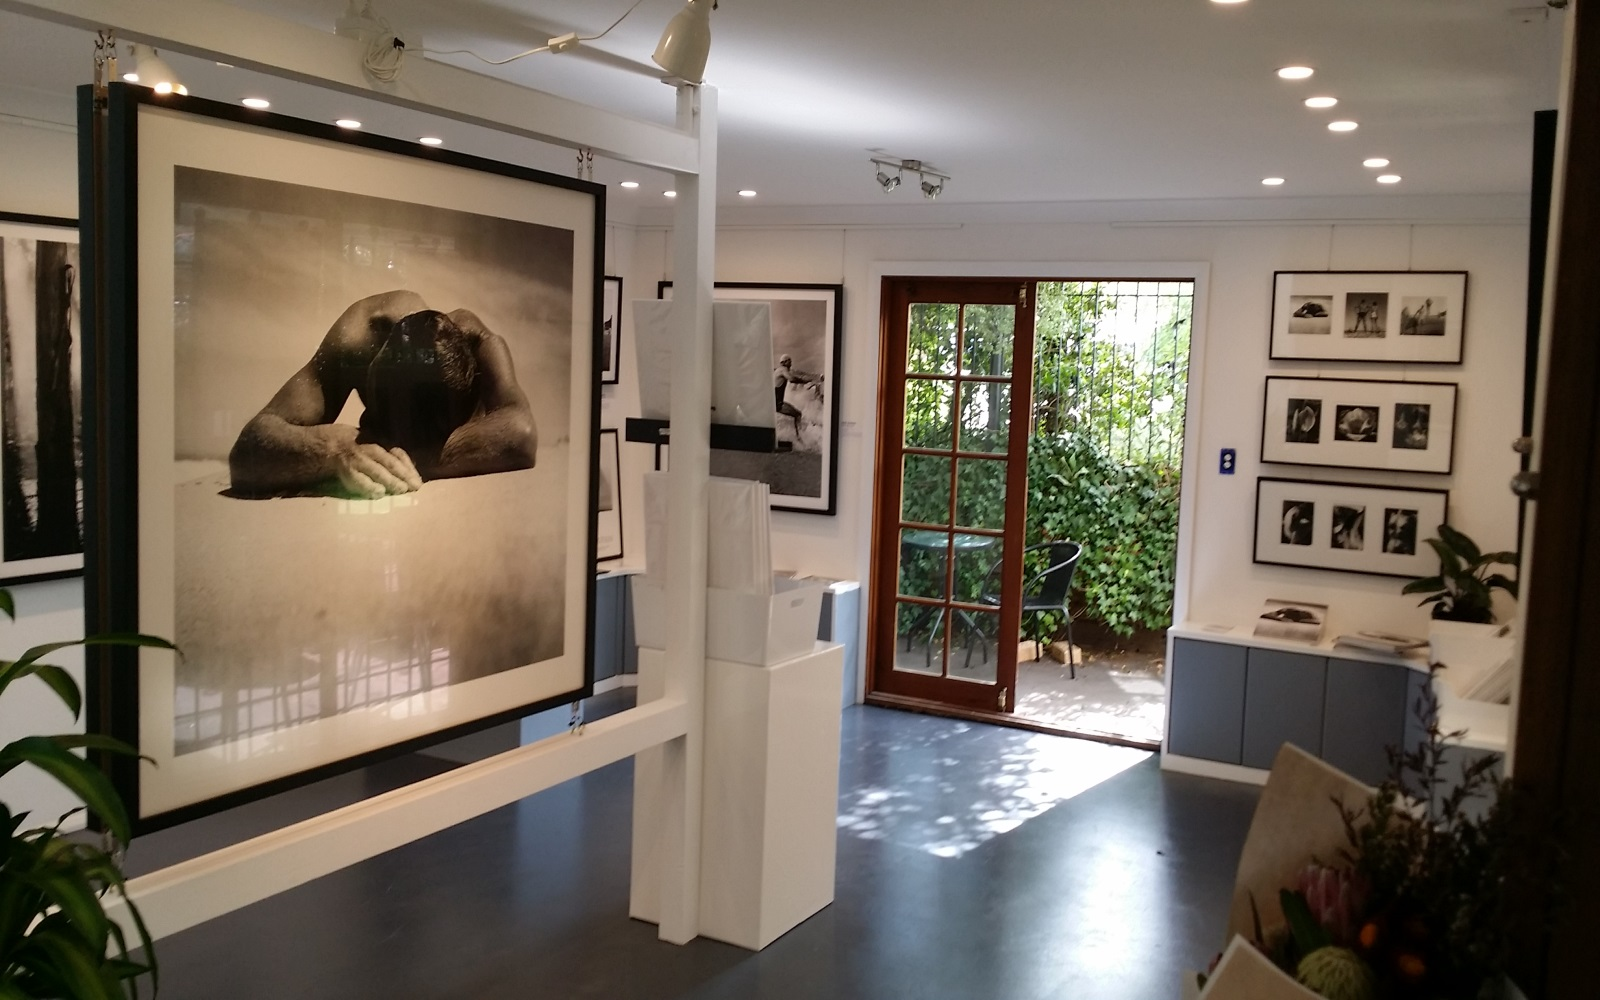 Light and Shadow Gallery - Featuring Max Dupain - Leura